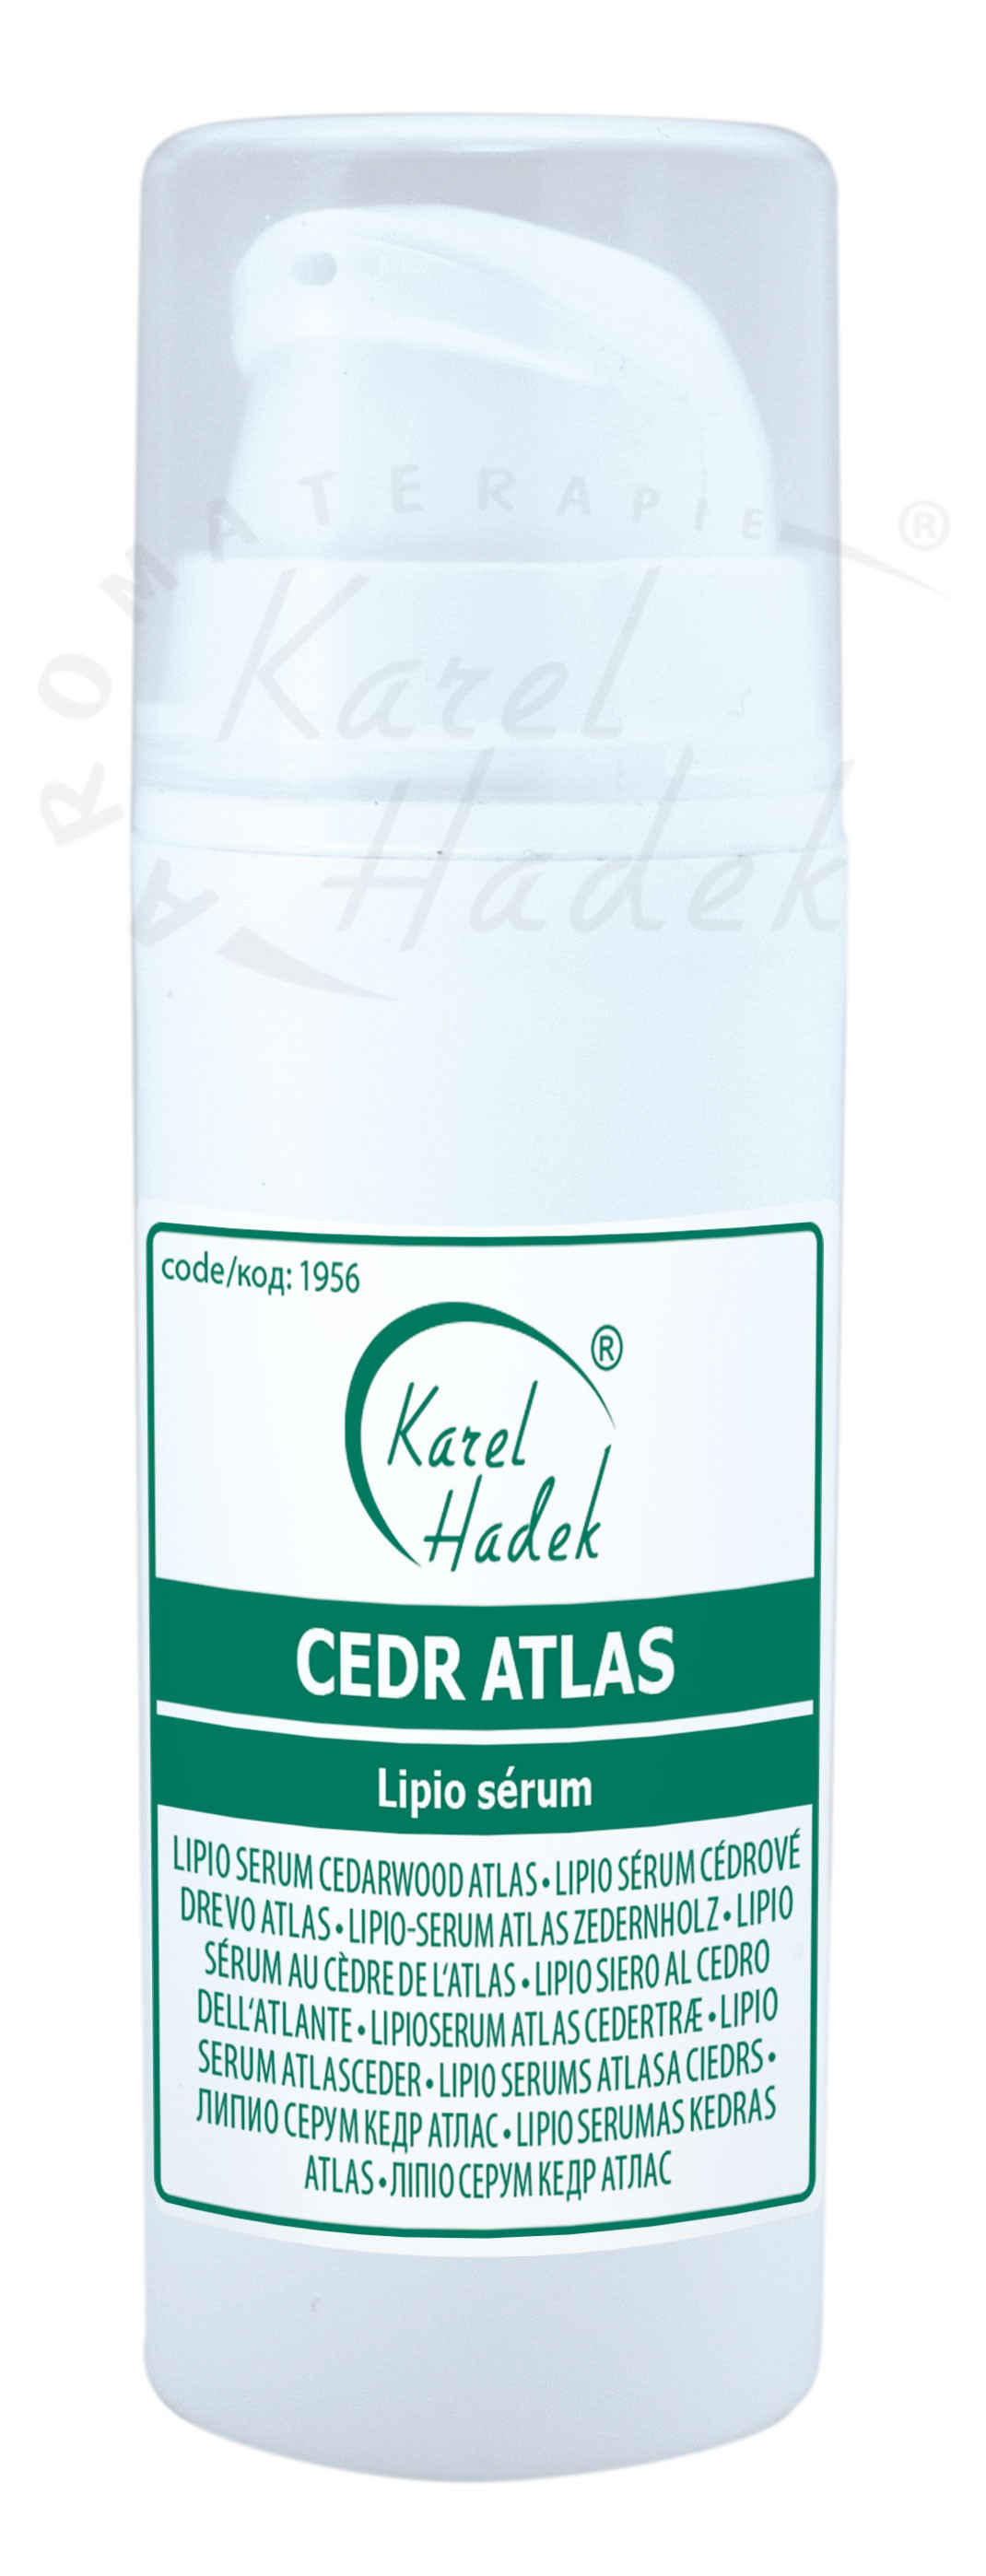 KH - CEDR ATLAS LIPIO SÉRUM 30 ml